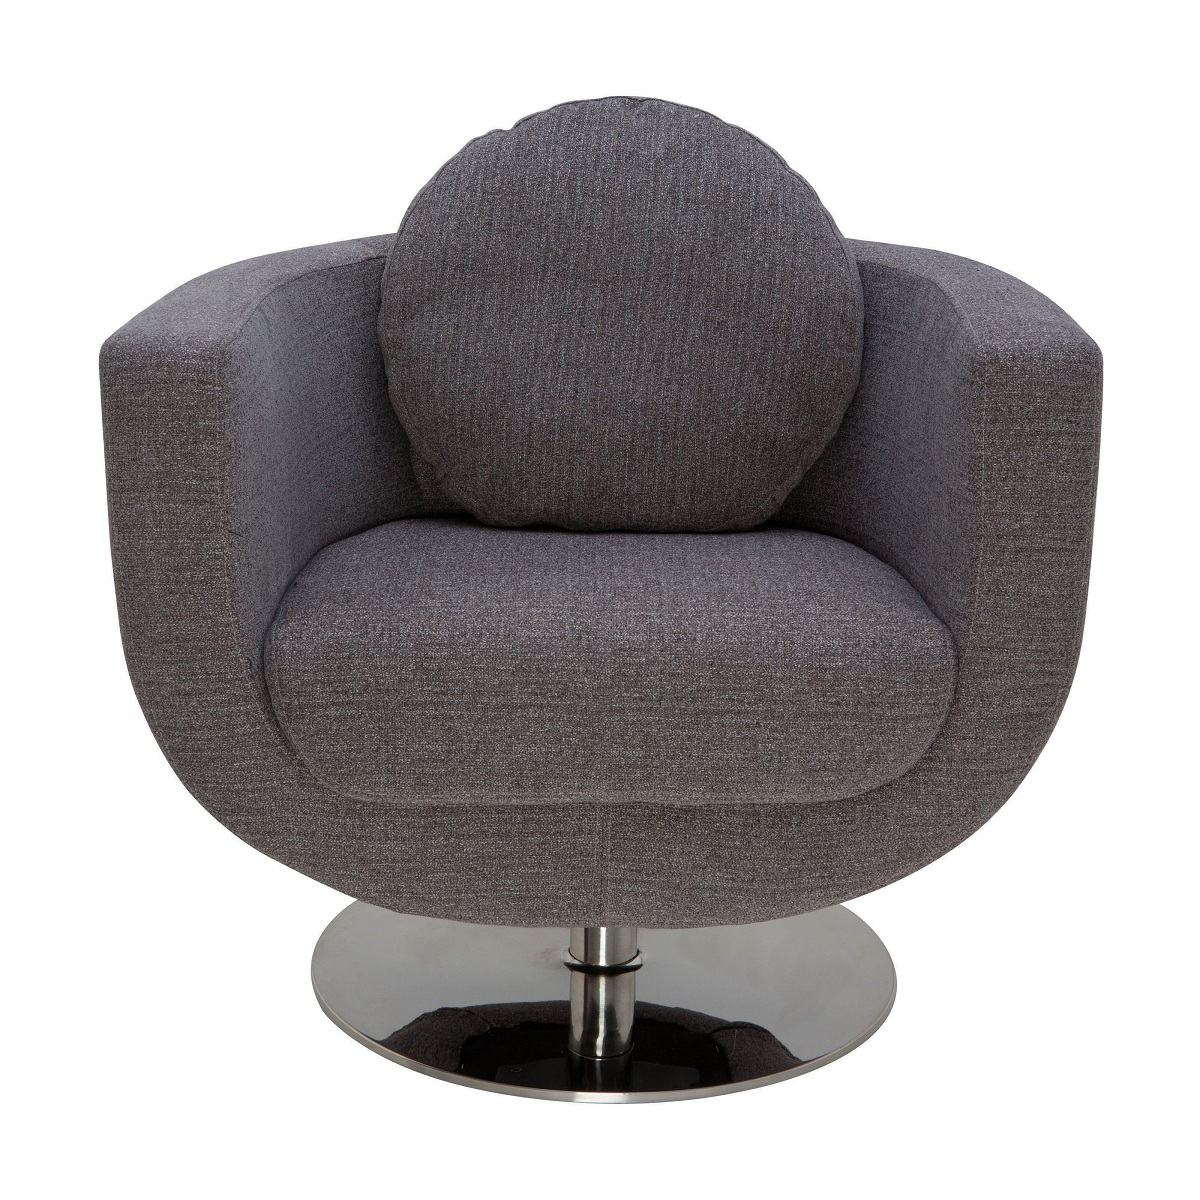 Image of: Unique Swivel Accent Chair